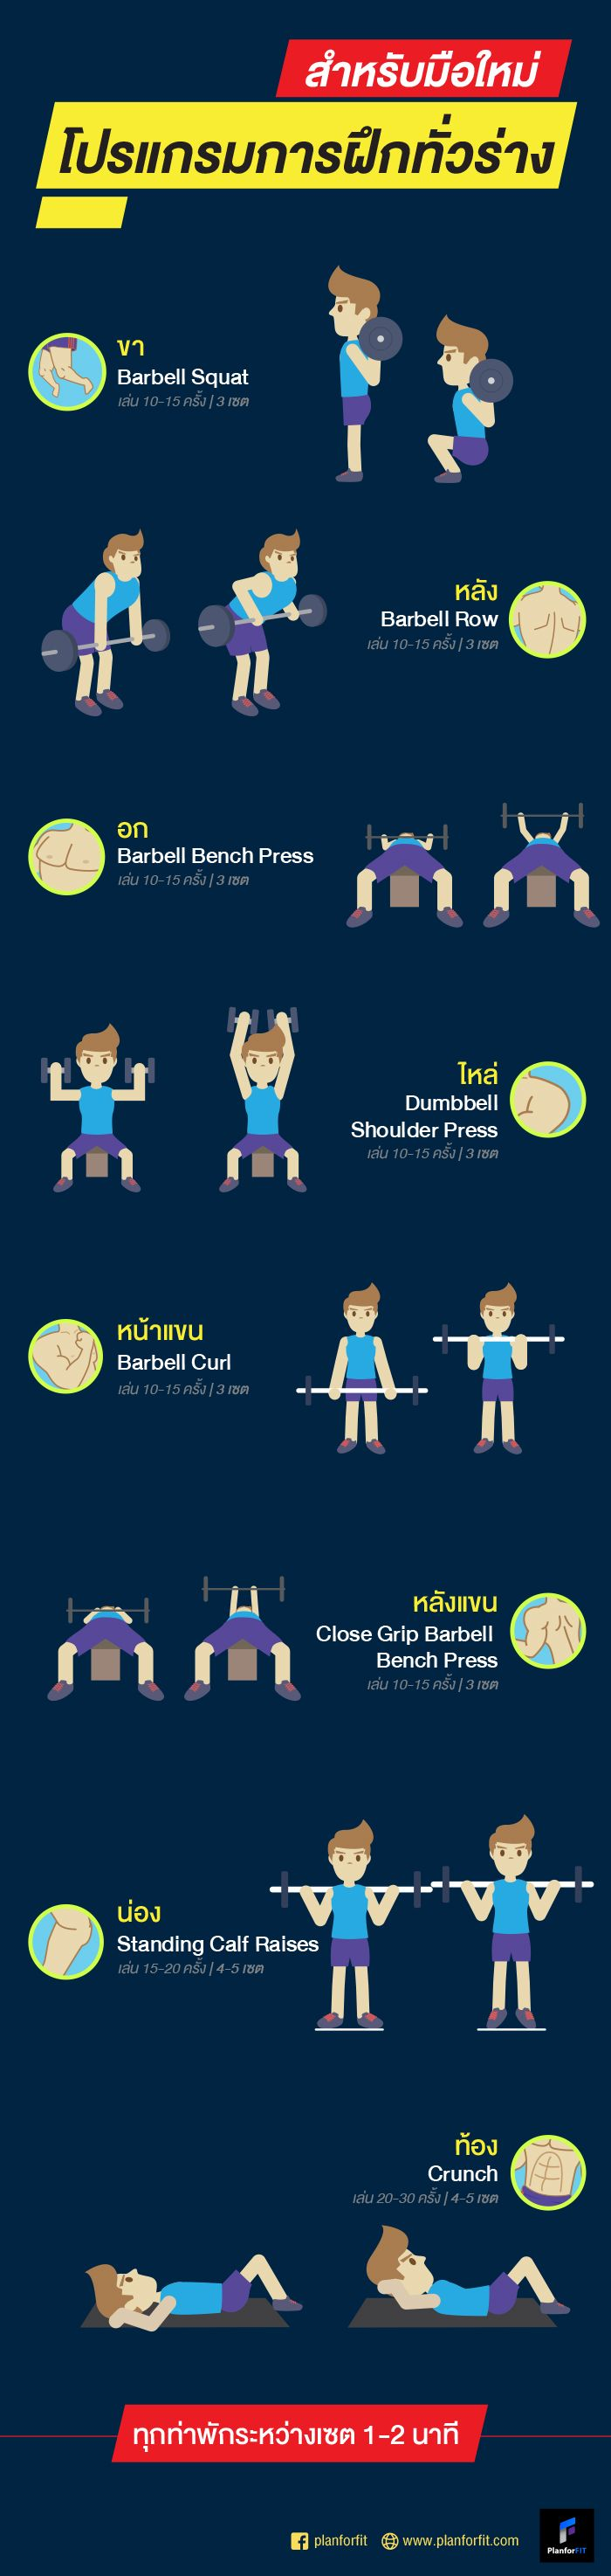 best images about โปรแกรมฝก on pinterest hiit workout and